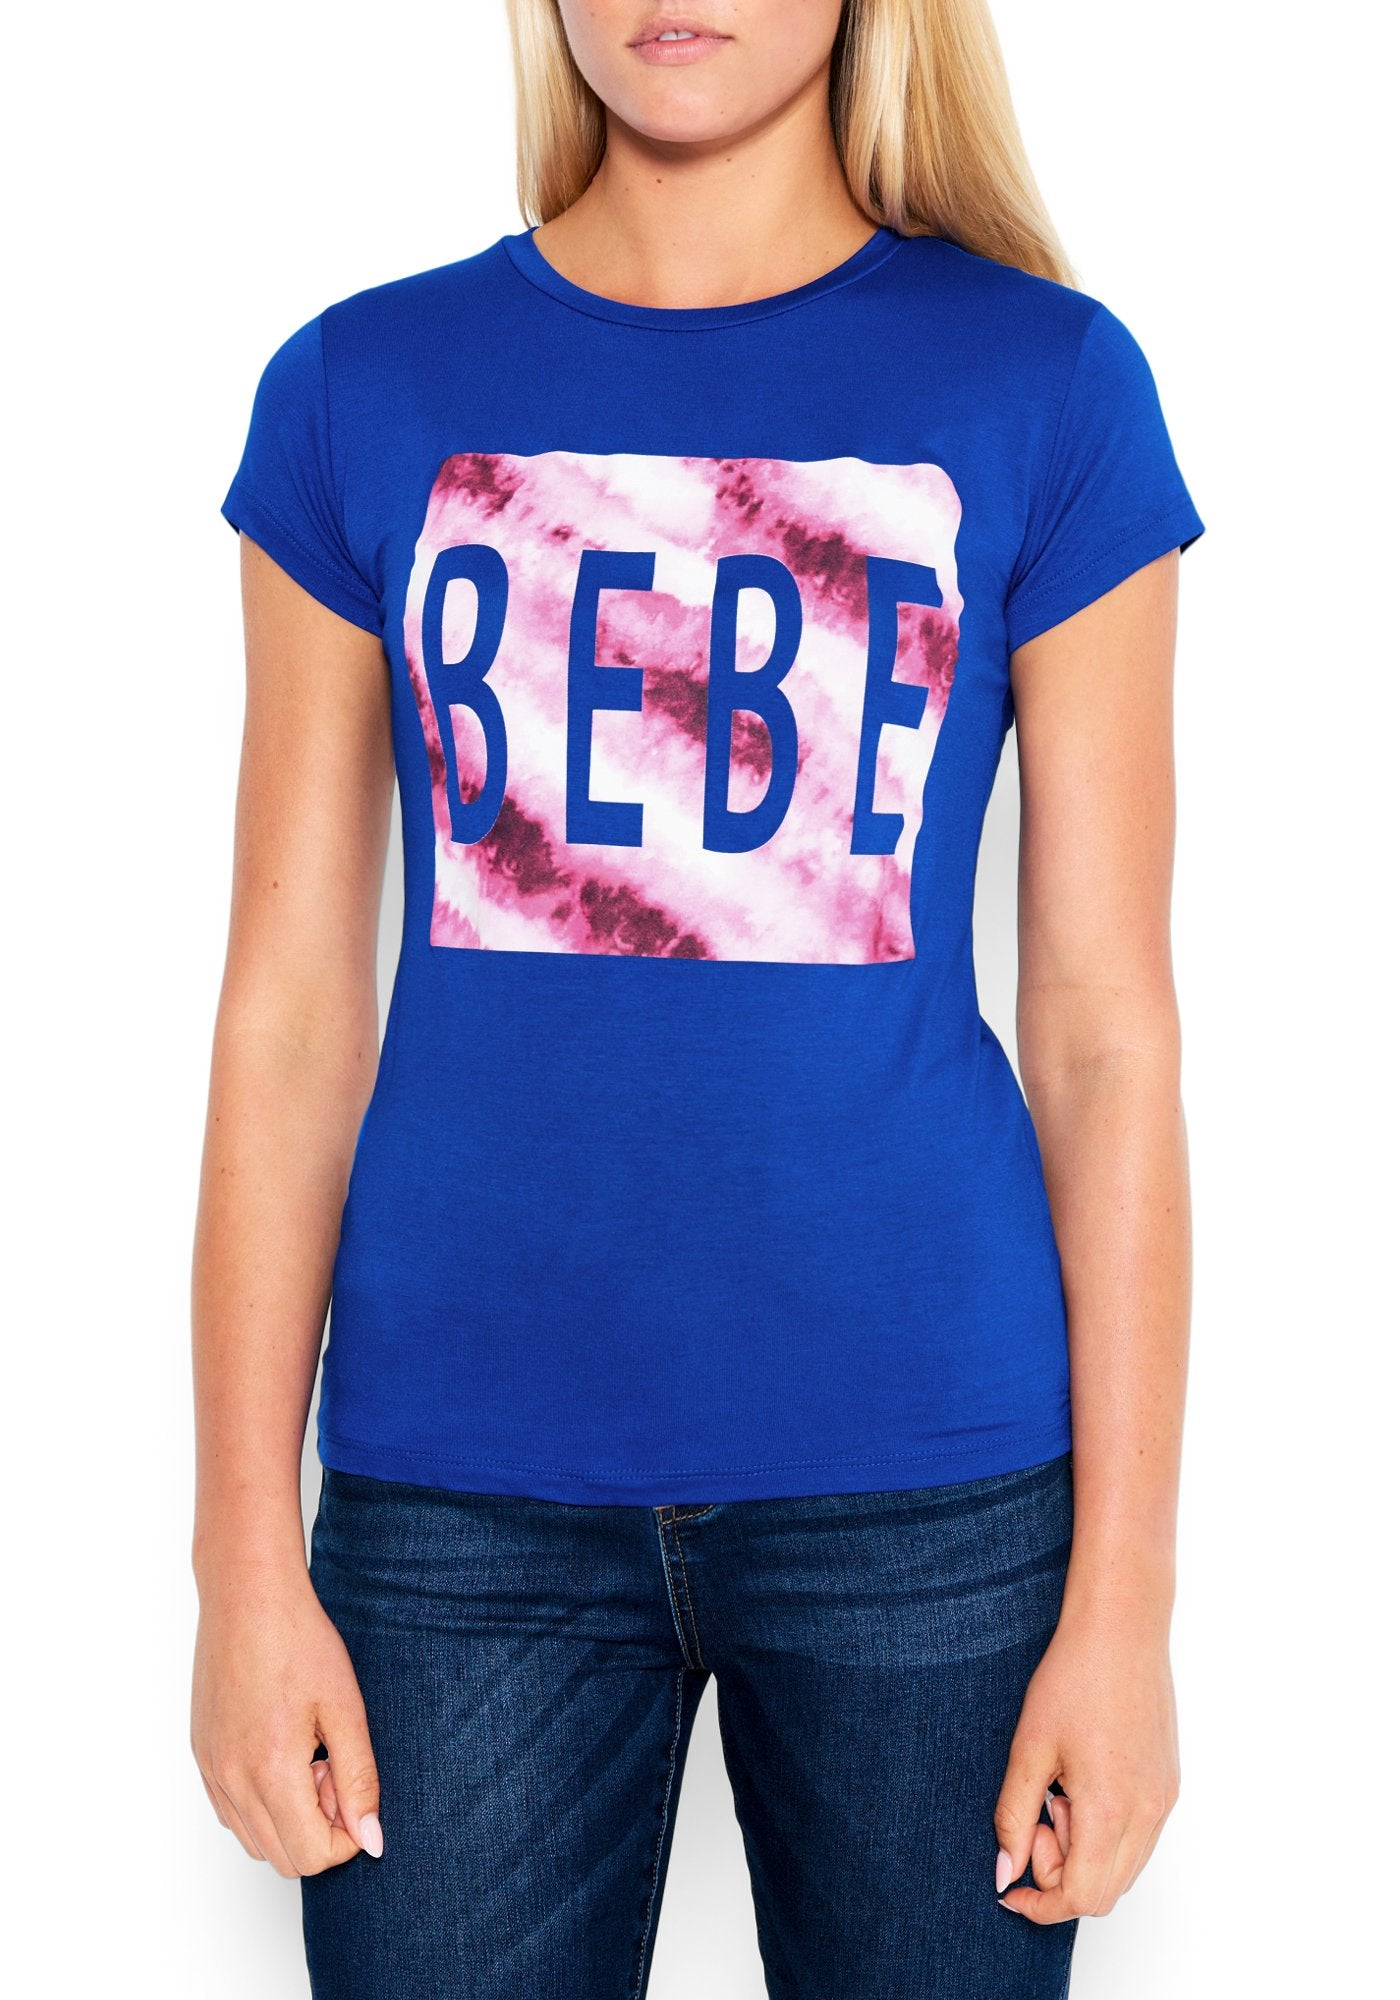 Image of Women's Bebe Logo Tie Dye Tee Shirt, Size XL in SURF THE WEB Spandex